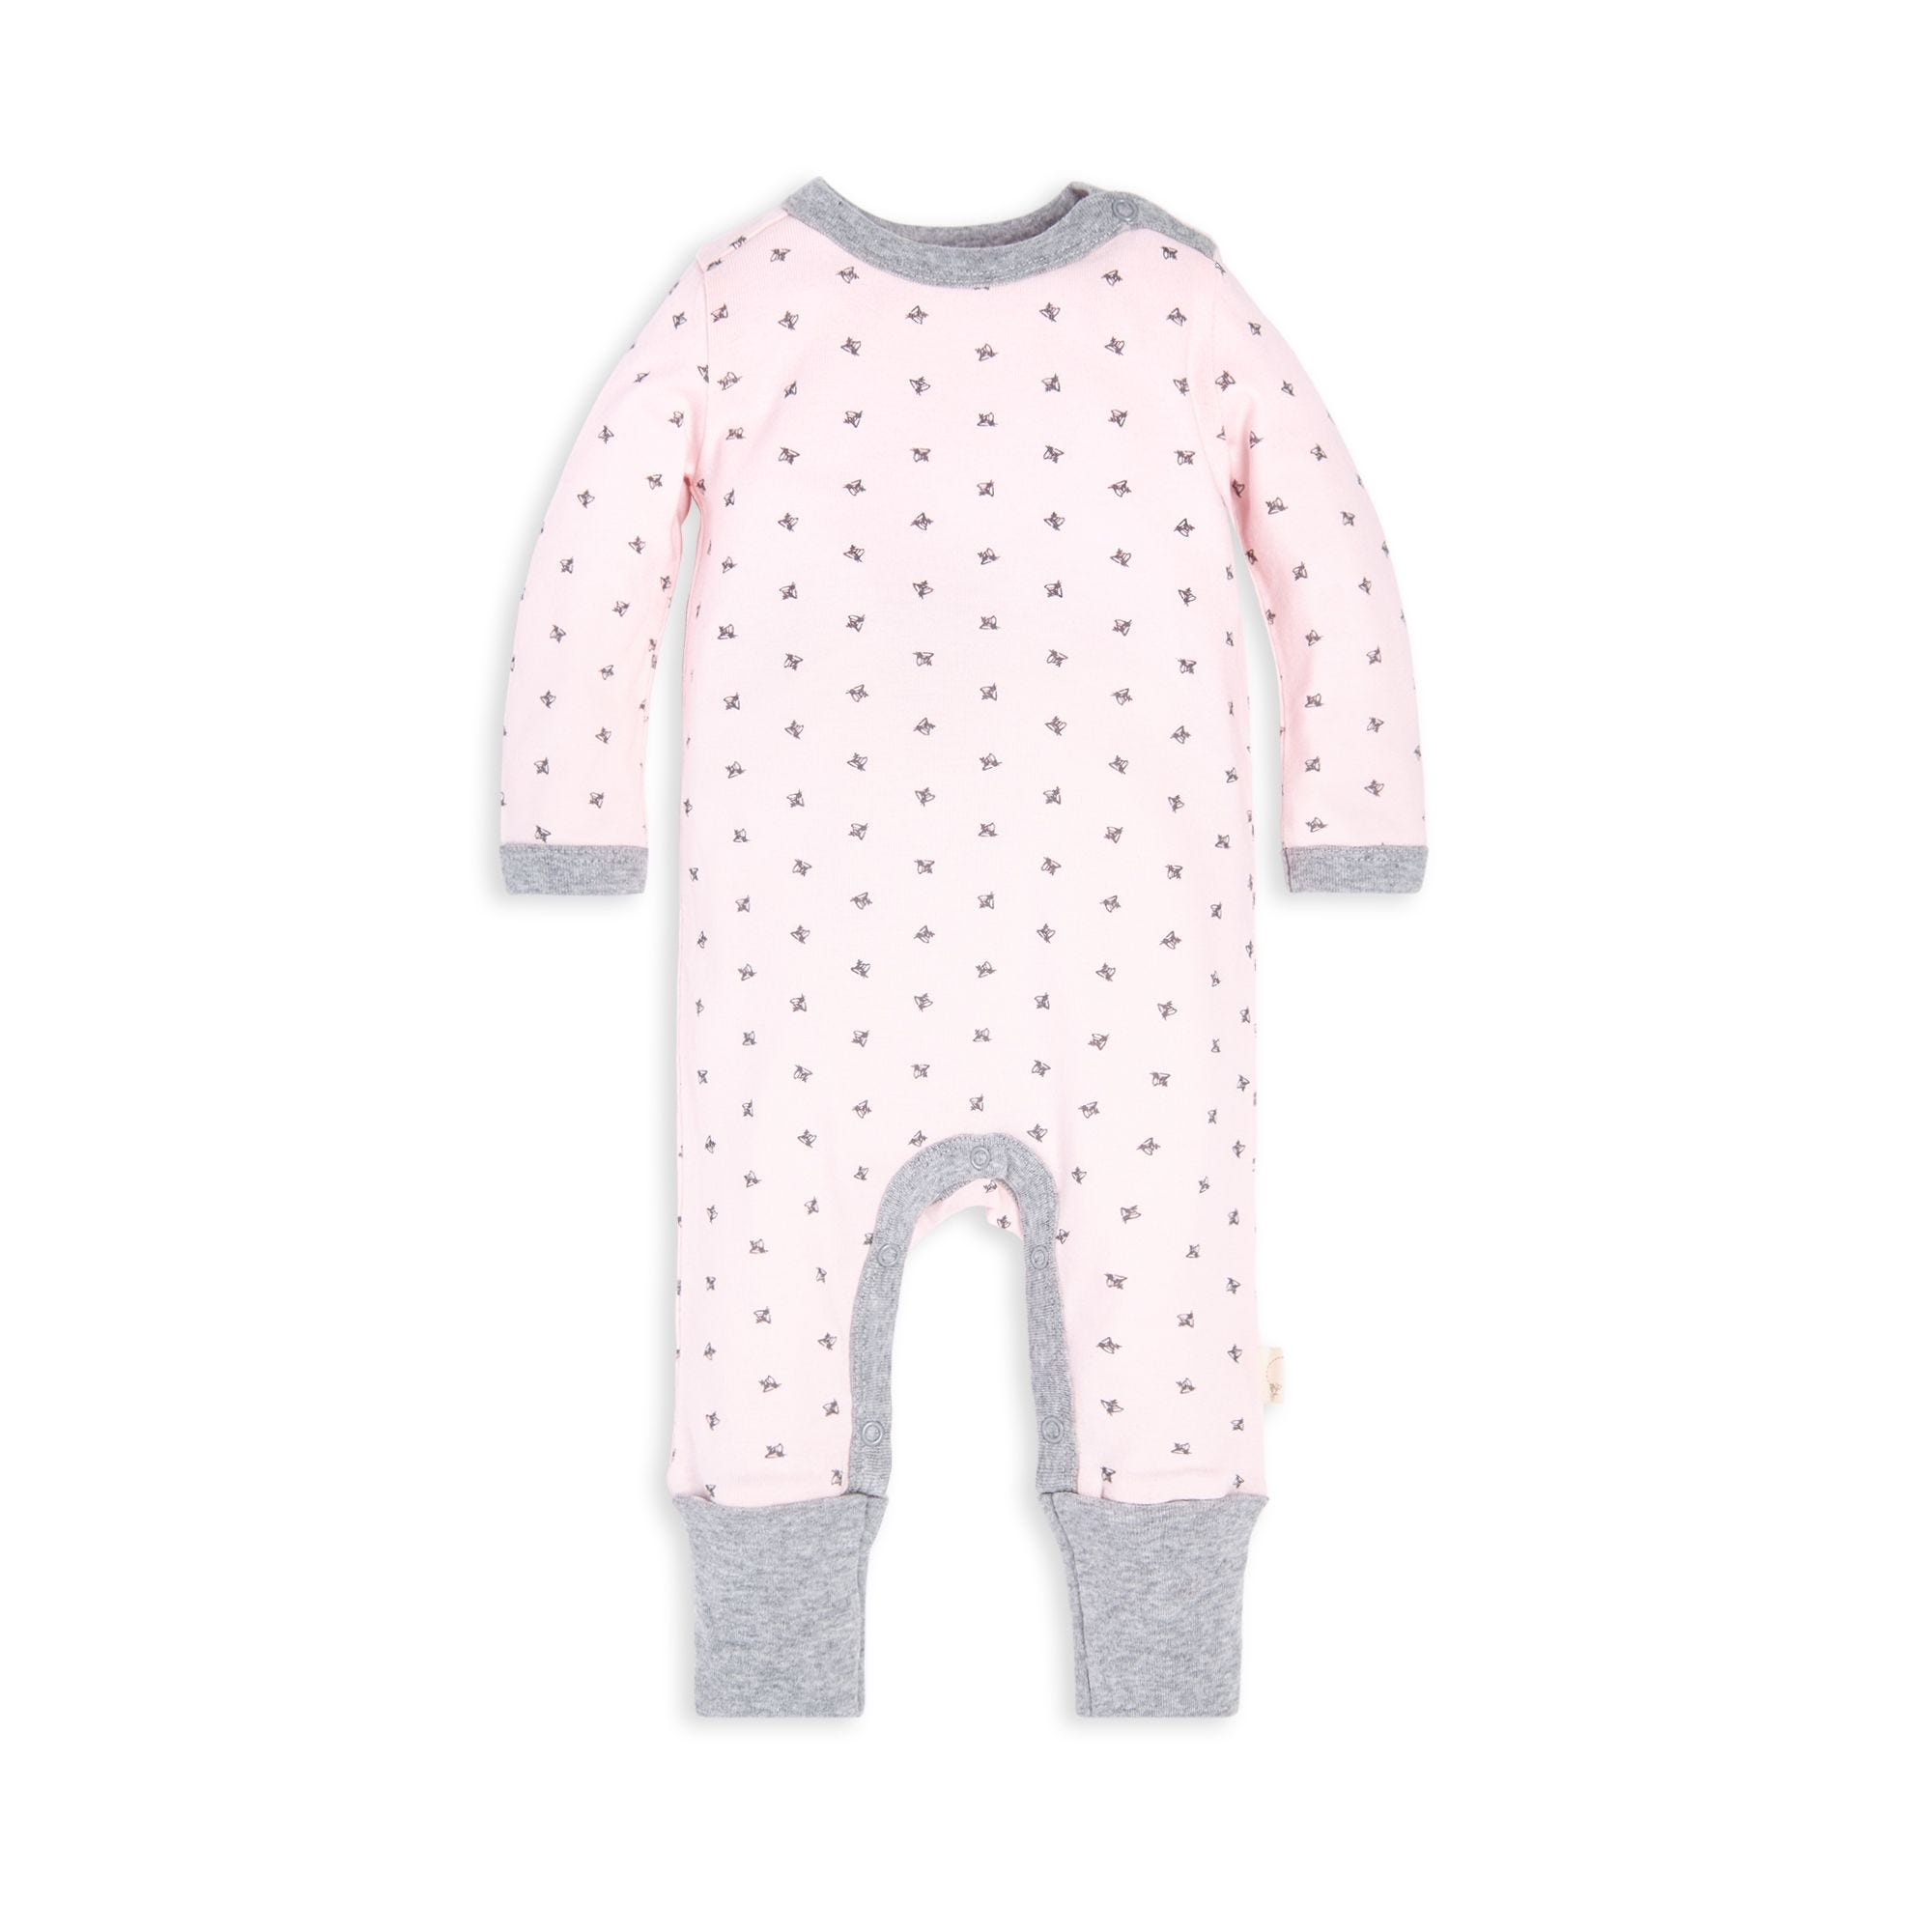 c60d83286 Sketched Bees Organic Baby Jumpsuit